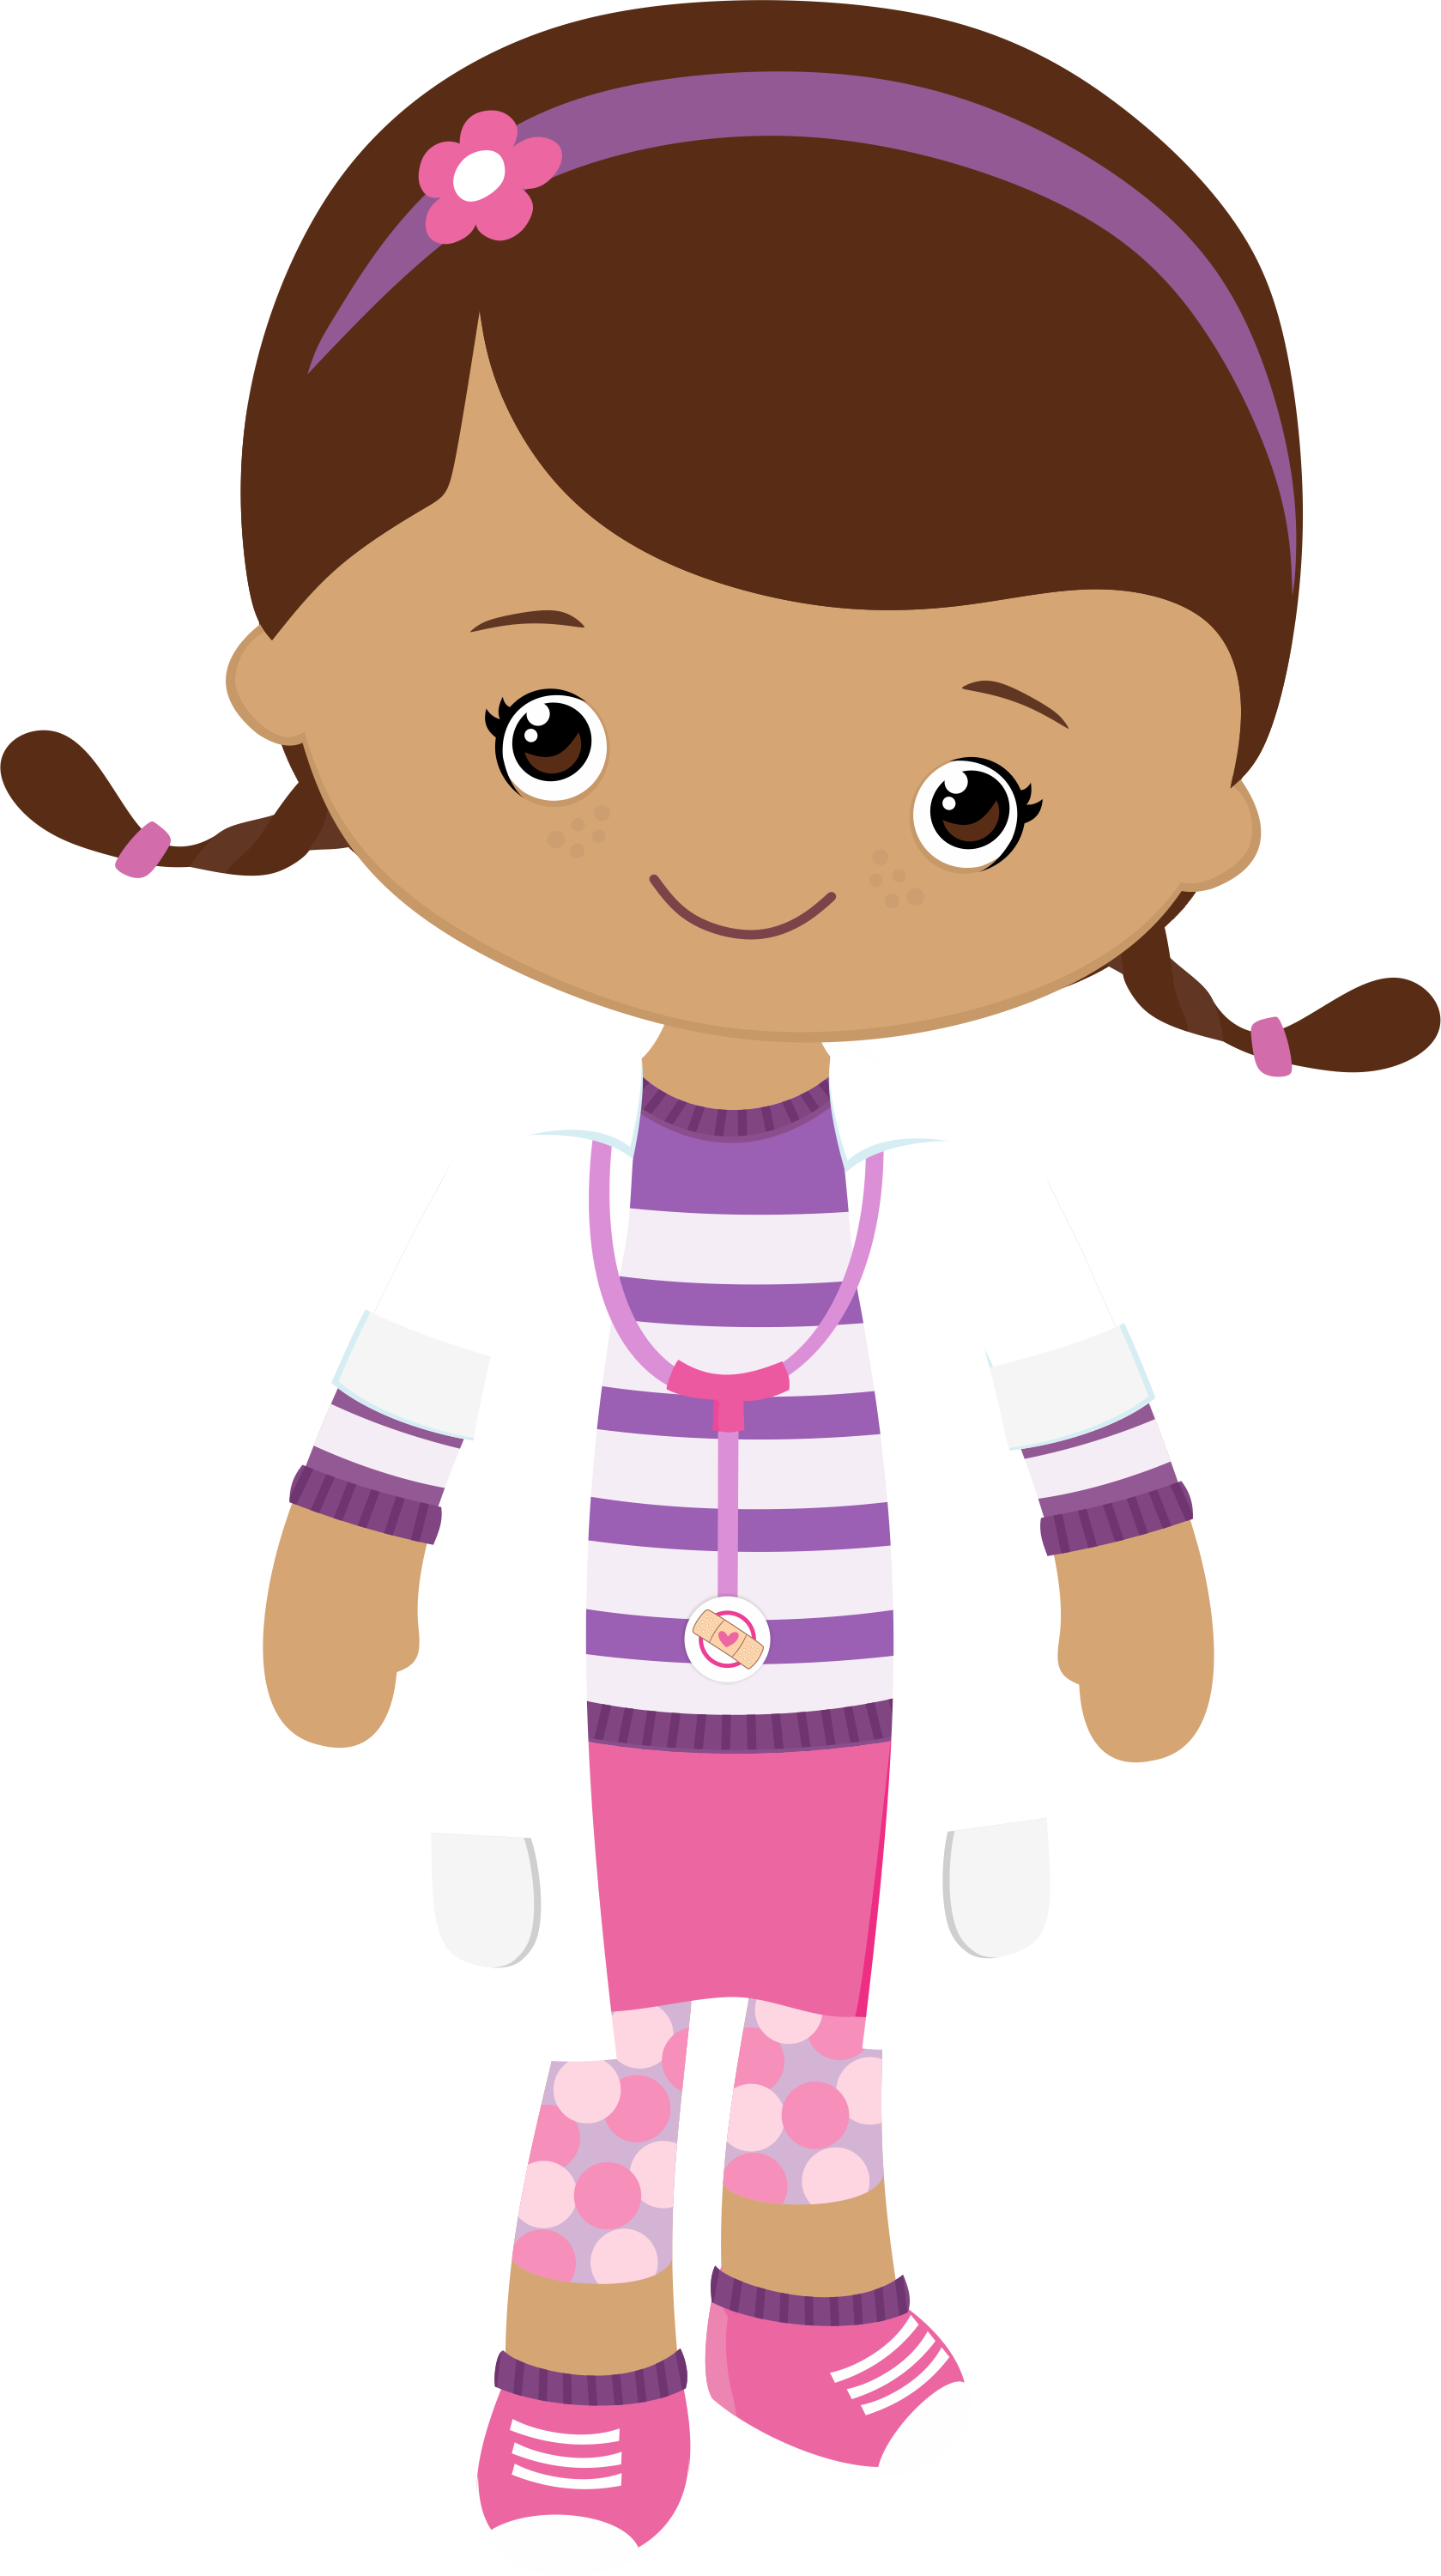 Doc mcstuffins character clipart clipart library download Photo by @selmabuenoaltran - Minus | DOC MCSTUFFINS | Pinterest ... clipart library download